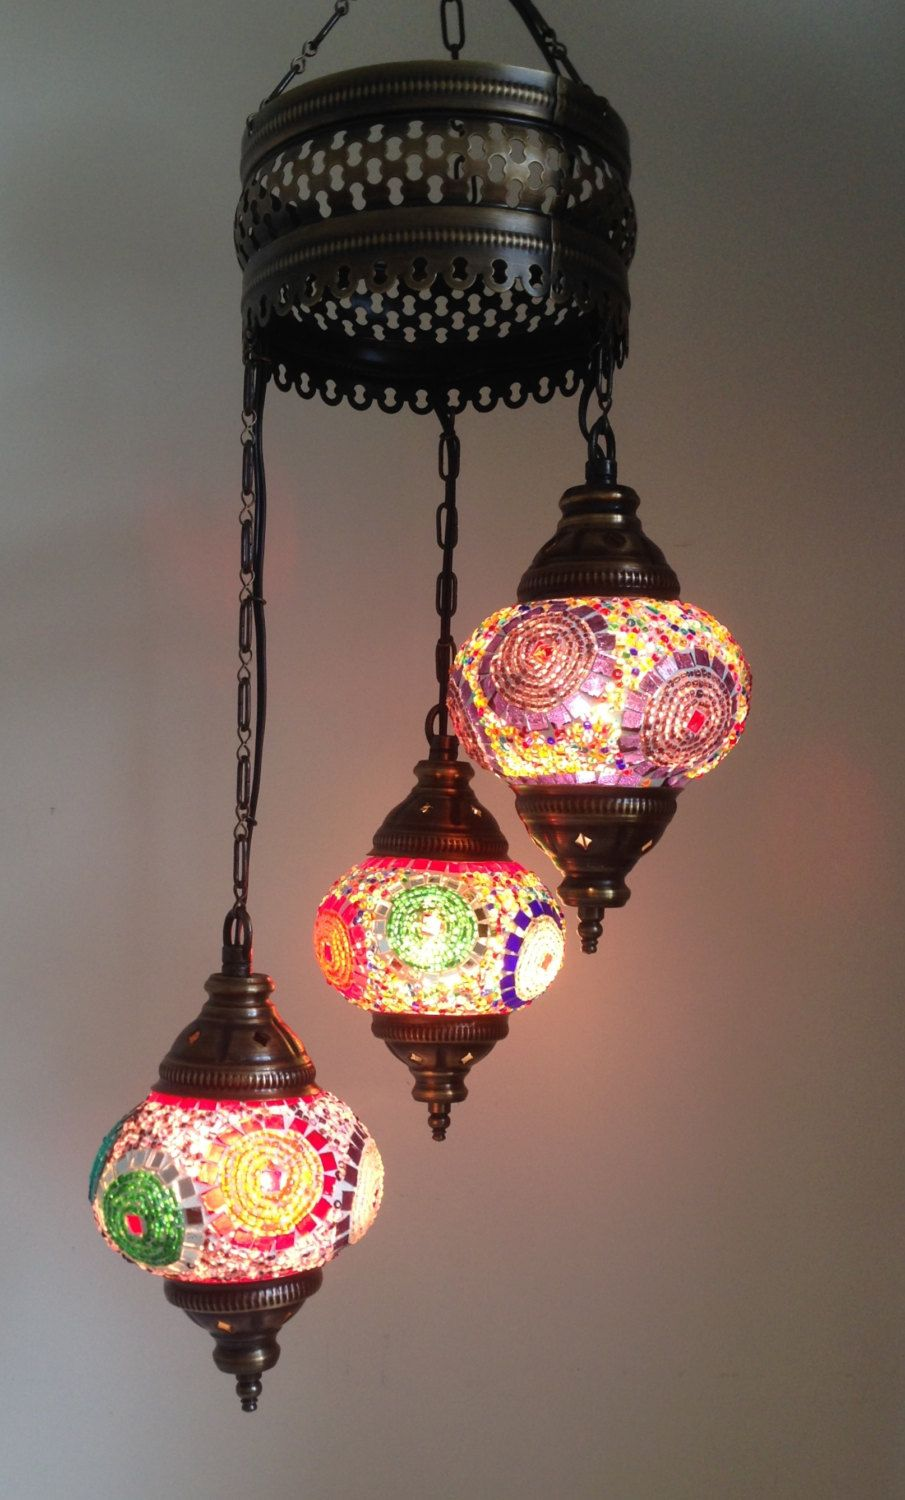 Colorful lamp with 3 hand made mosaic bulbs turkish lamp lantern colorful lamp with 3 hand made mosaic bulbs turkish lamp lantern lamp romantic aloadofball Image collections